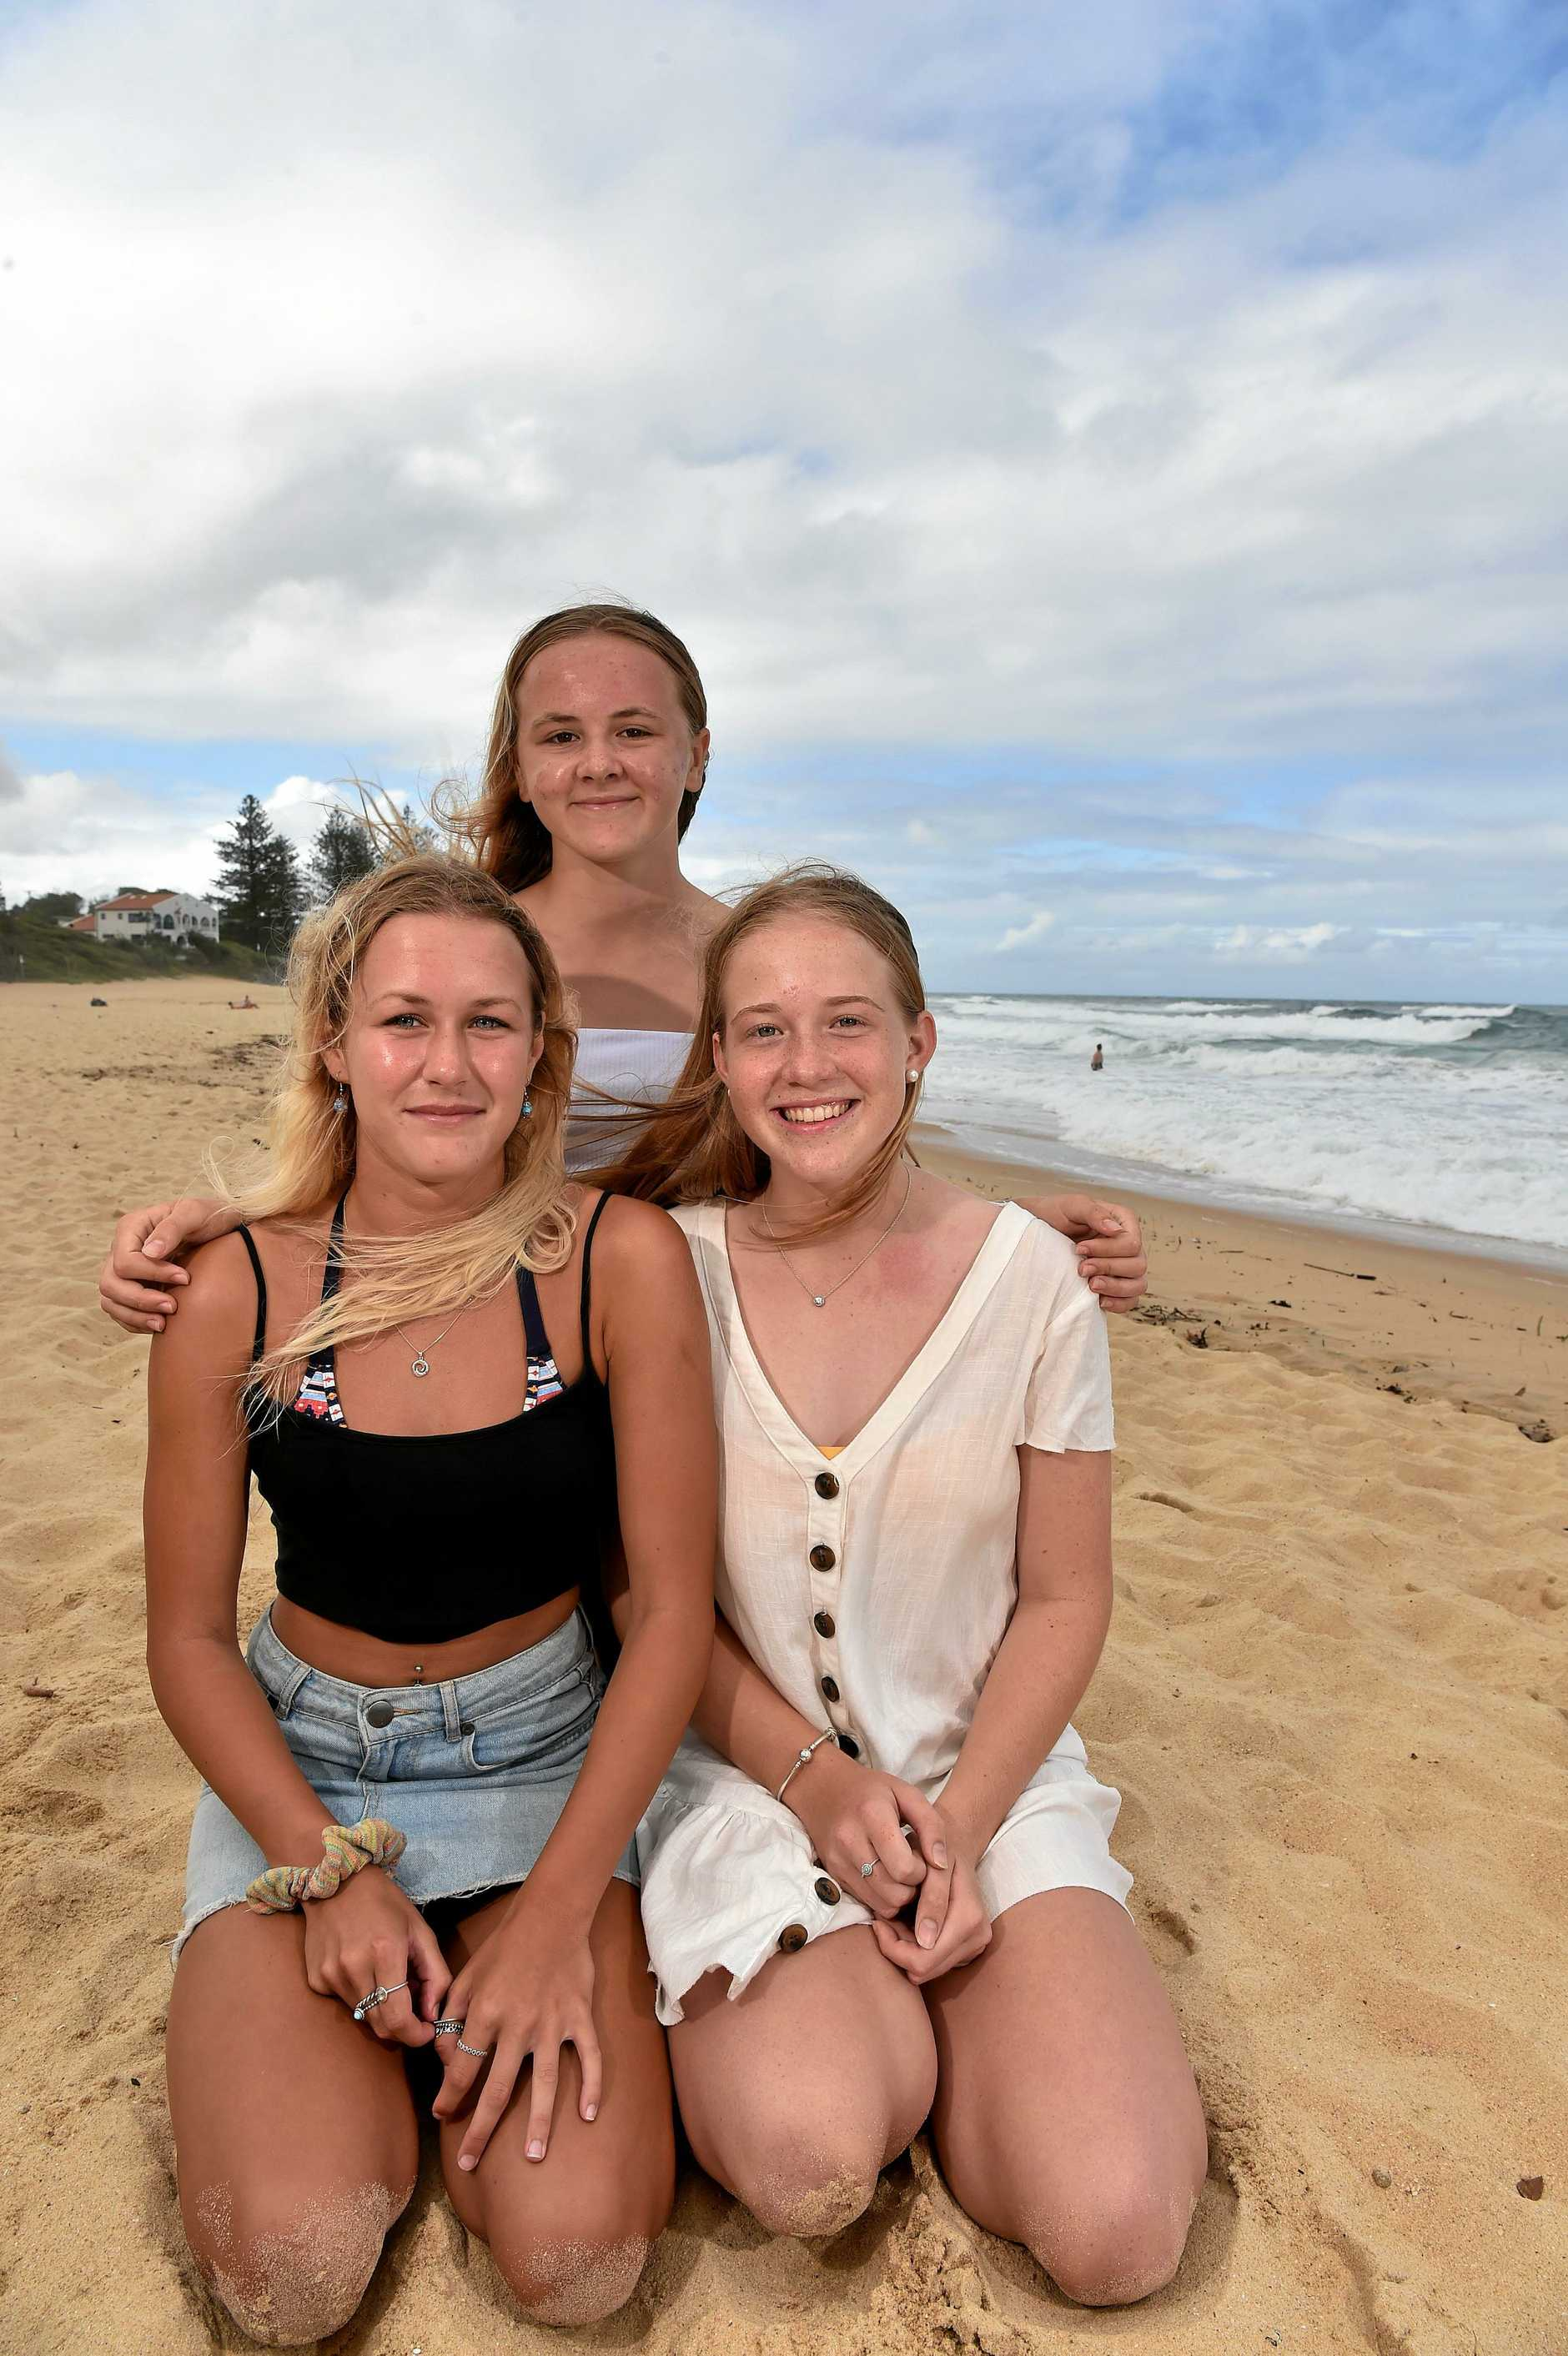 RESCUERS: Keira Waldron,14, Jacinta Strathearn,16, and Paige Gardner,15, helped rescue a family in the surf at Moffat Beach.